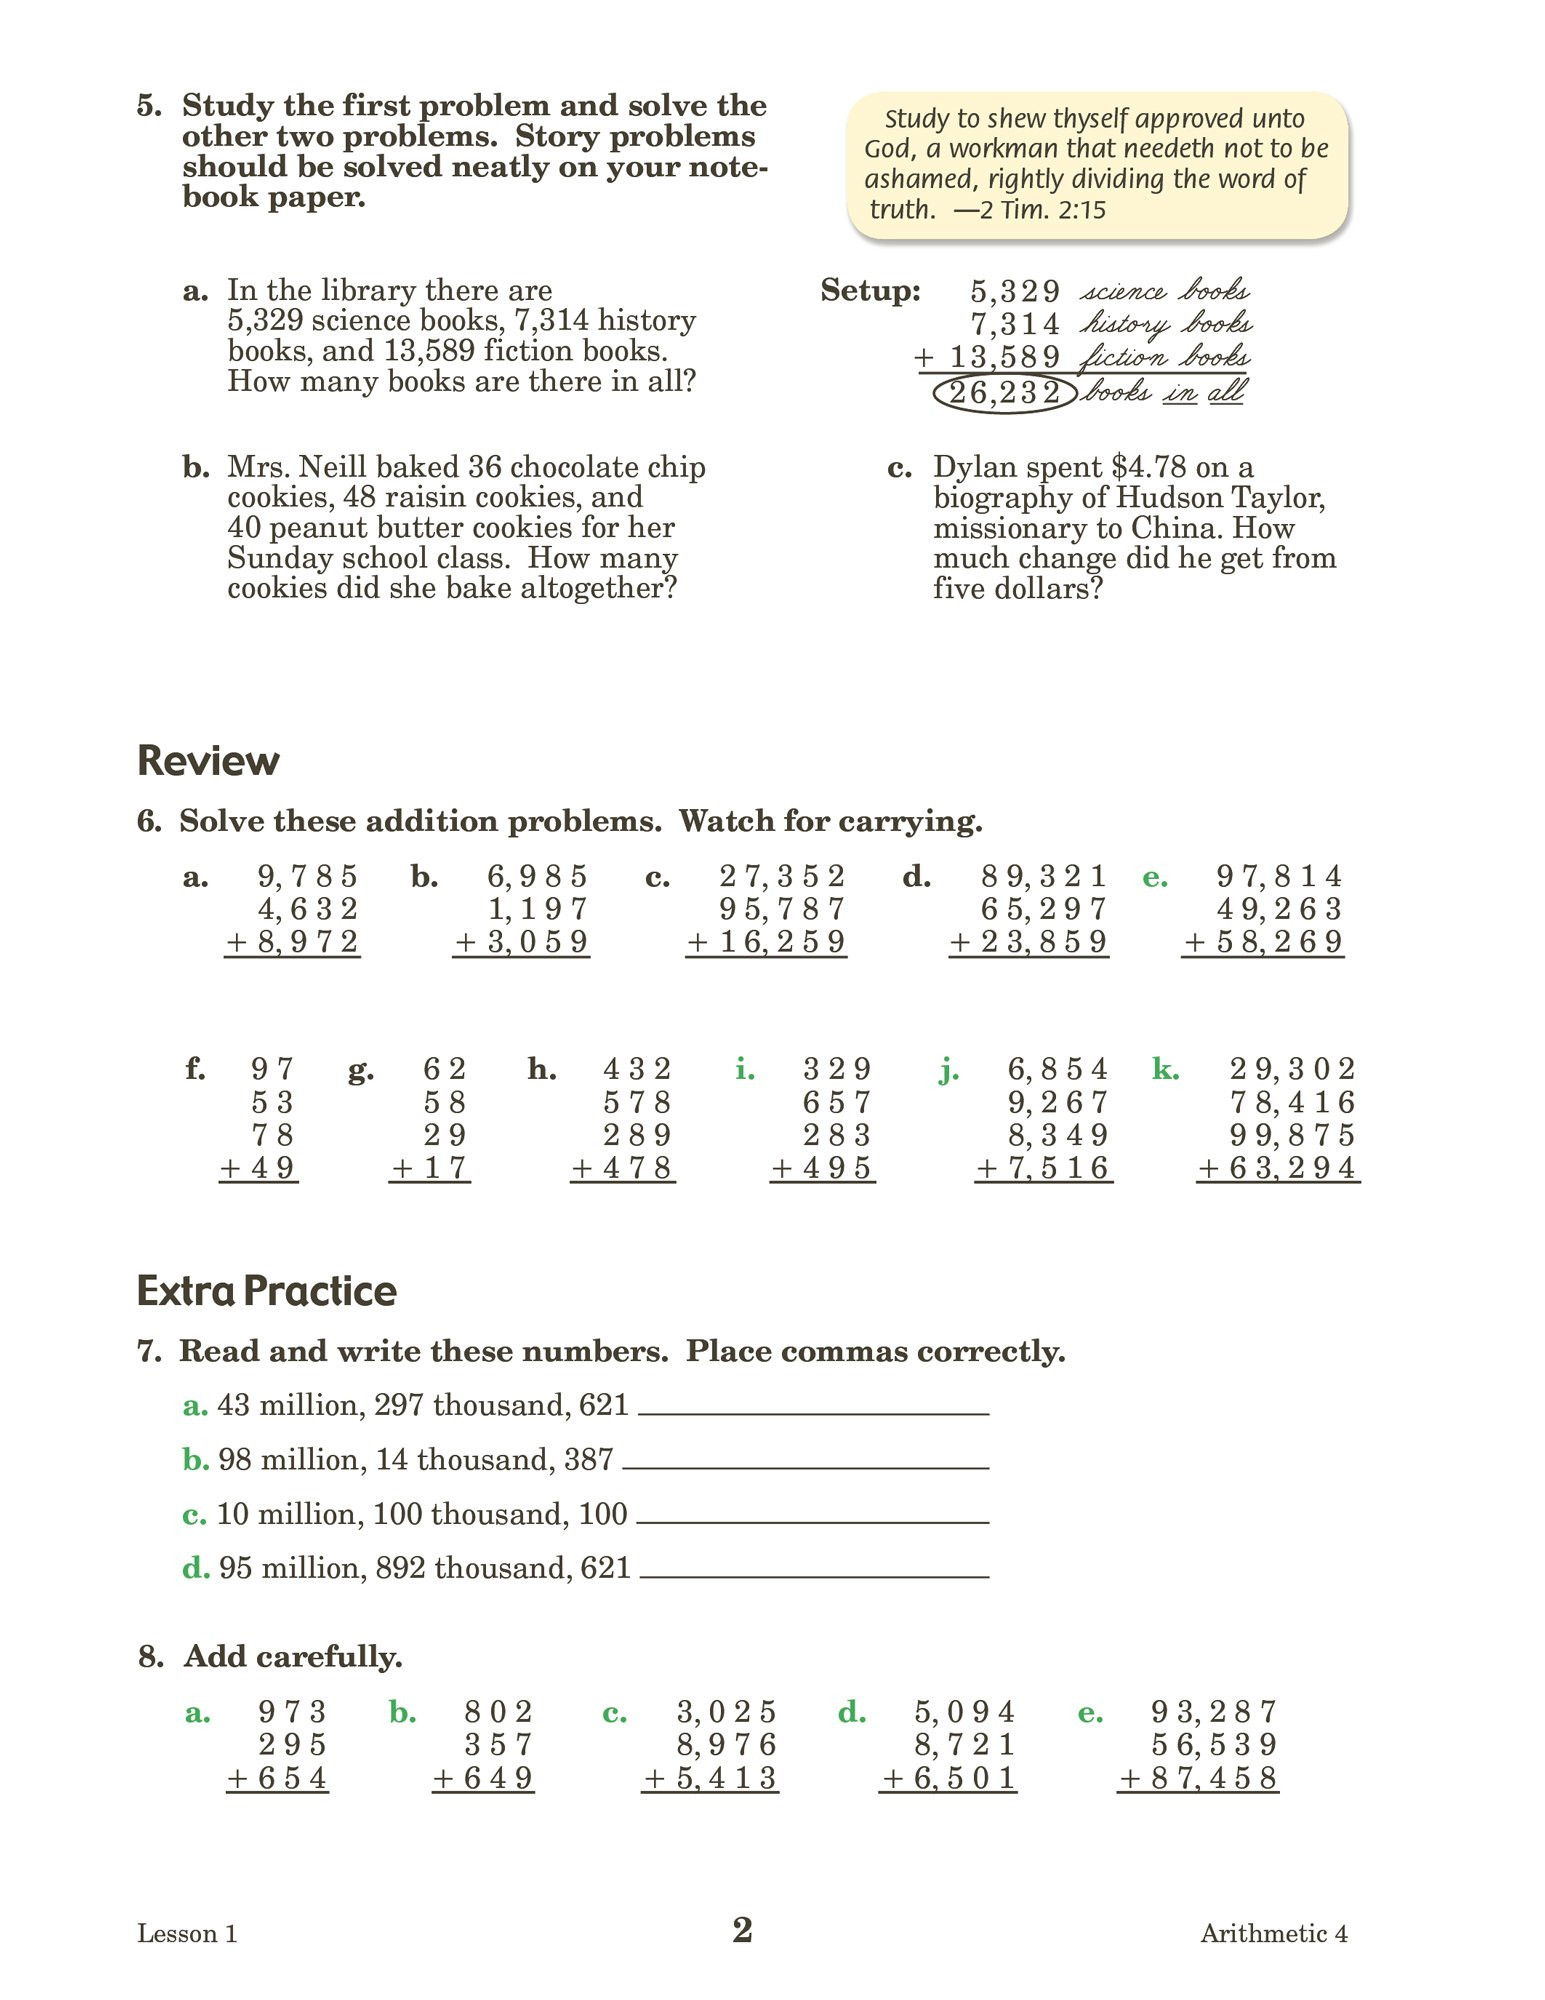 4th Grade Abeka Math Worksheets Arithmetic 4 Abeka Amazon Books